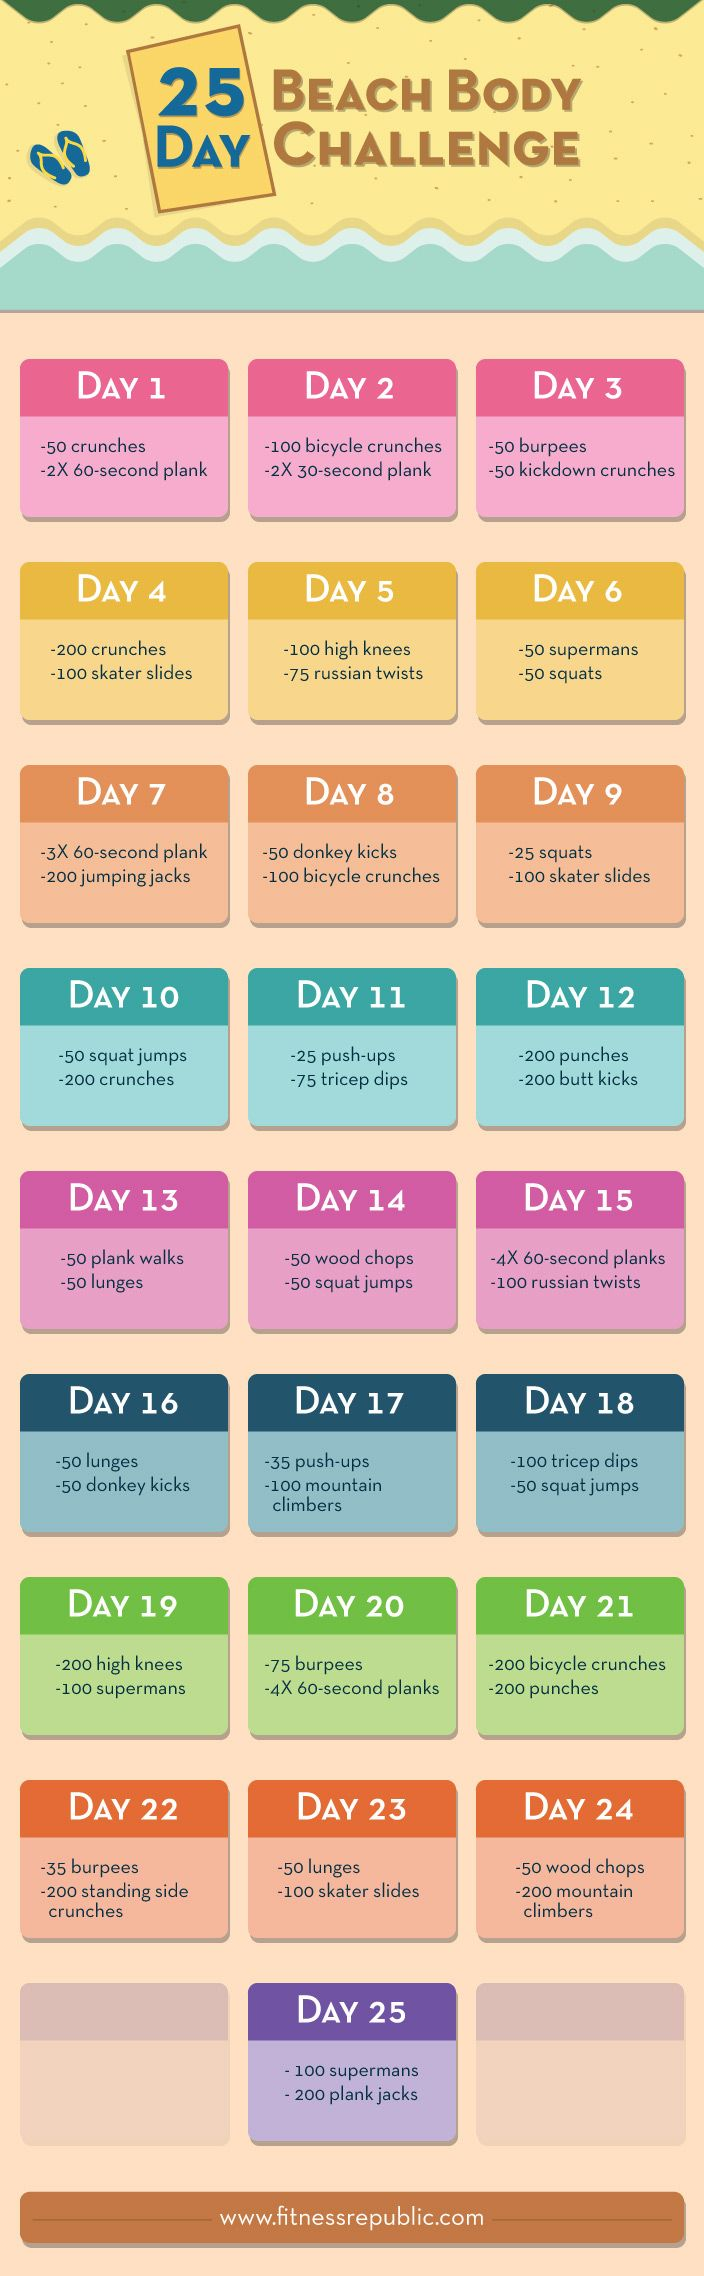 How To Get A Beach Body In 2 Days